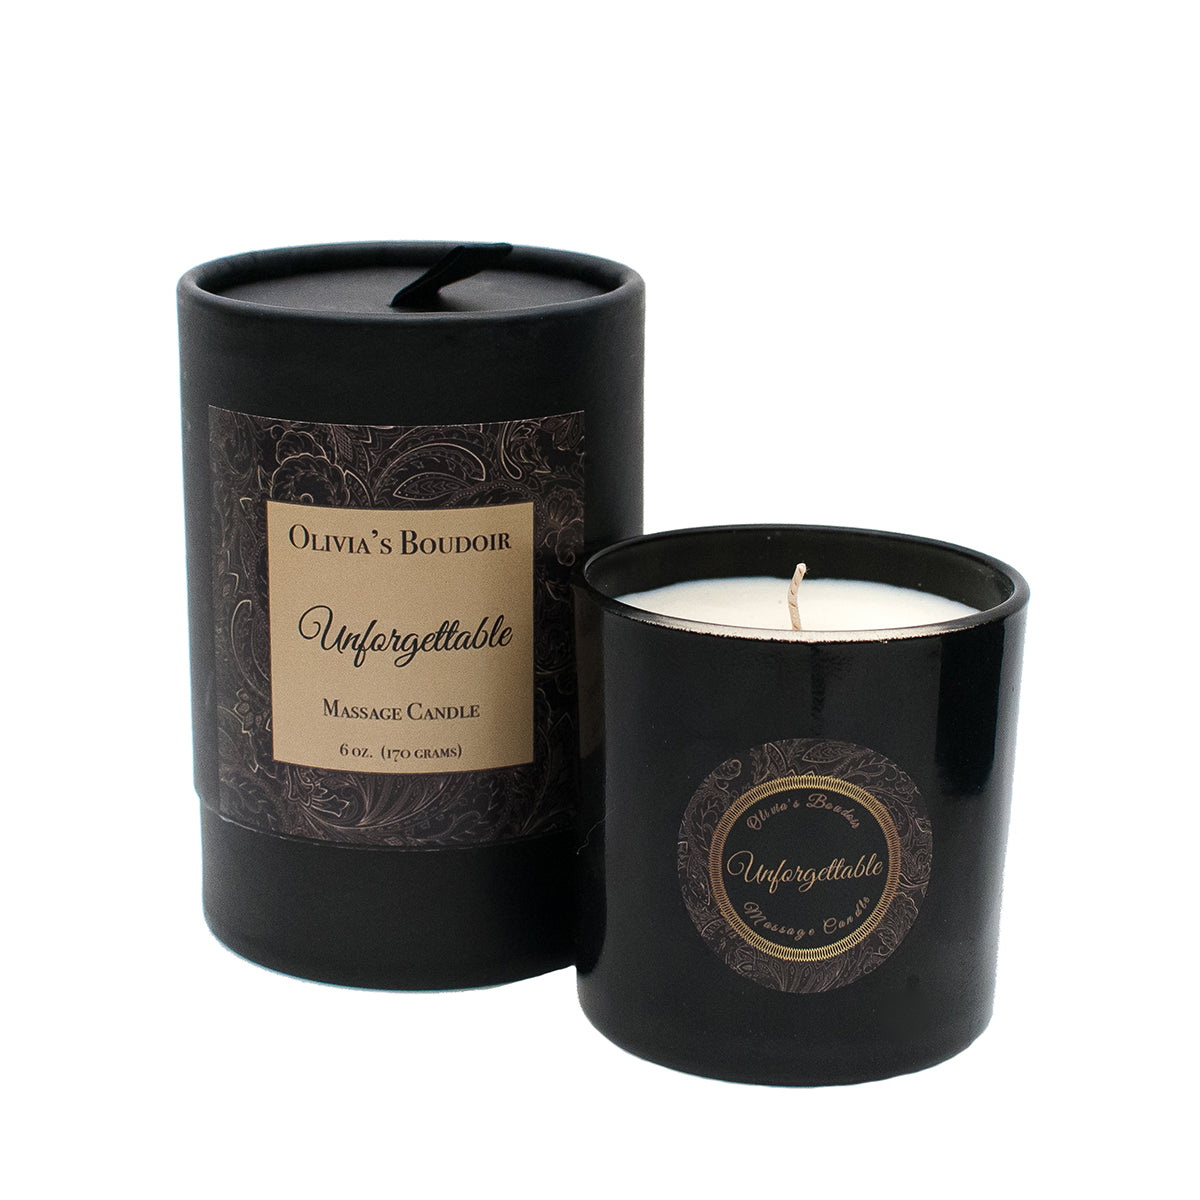 Olivia's Boudoir Candle 6.5oz - Unforgettable